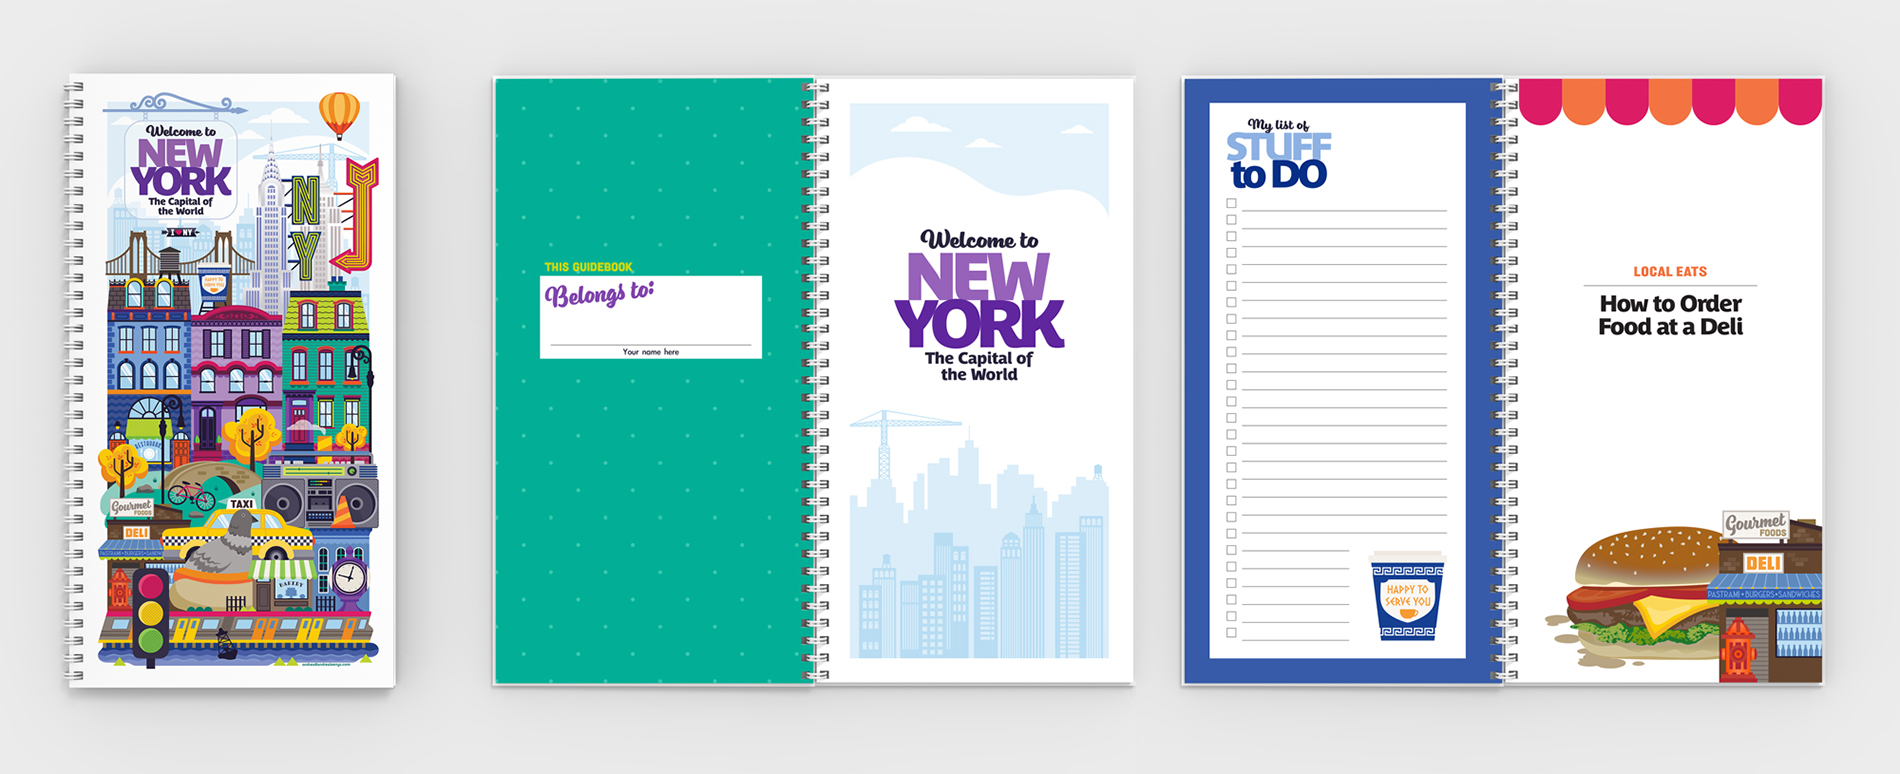 NYC illustrated guidebook spreads